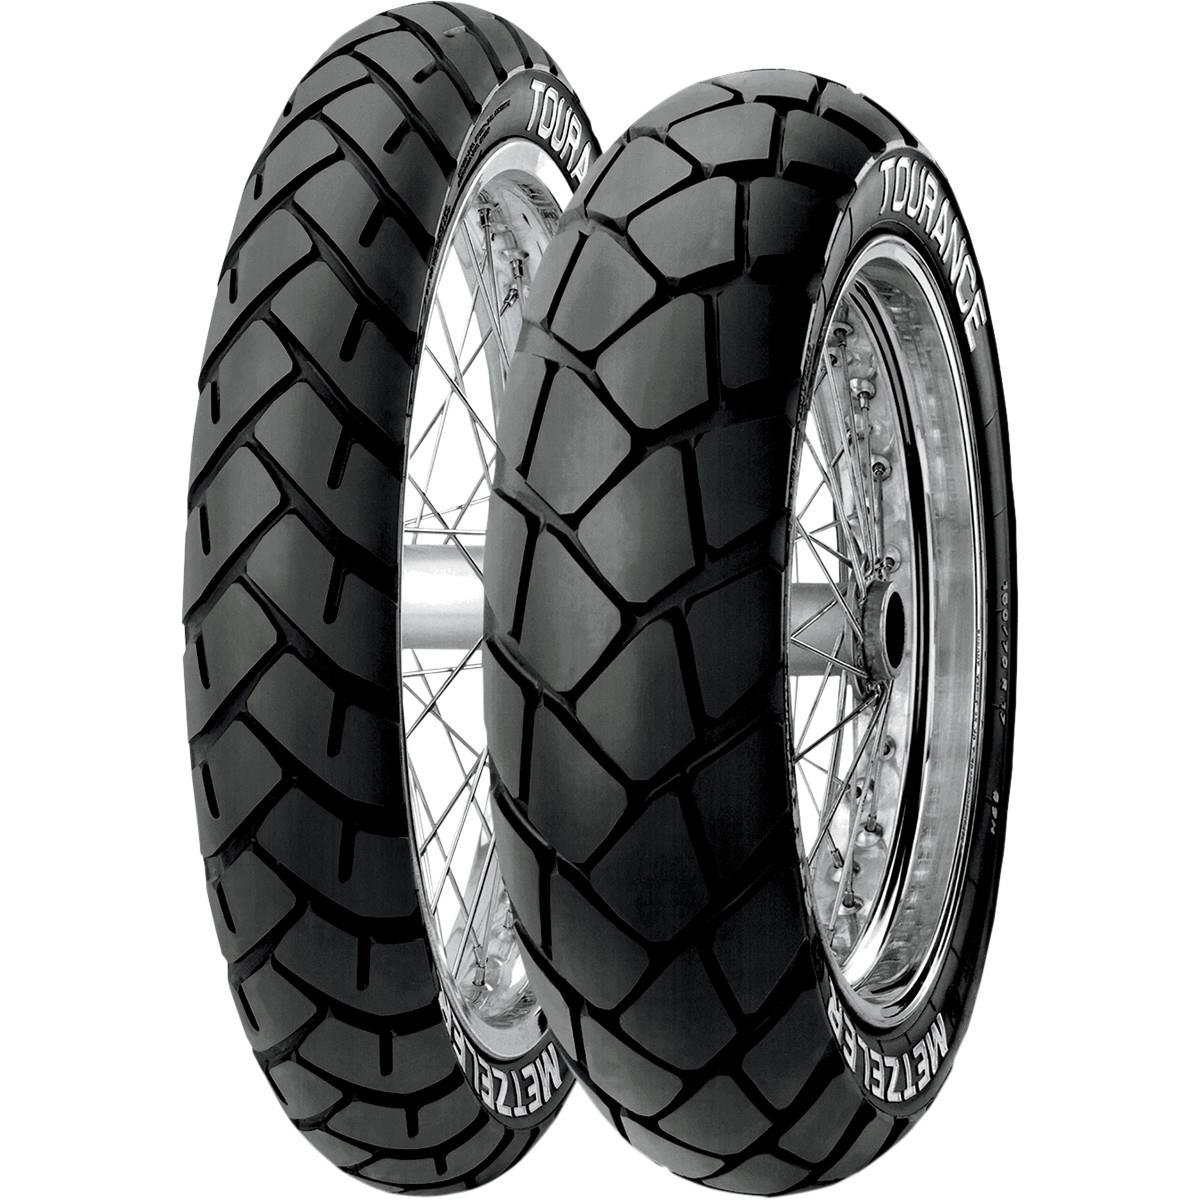 Metzeler Tourance Front Motorcycle Tire 110/80-19 1127800 4333045639